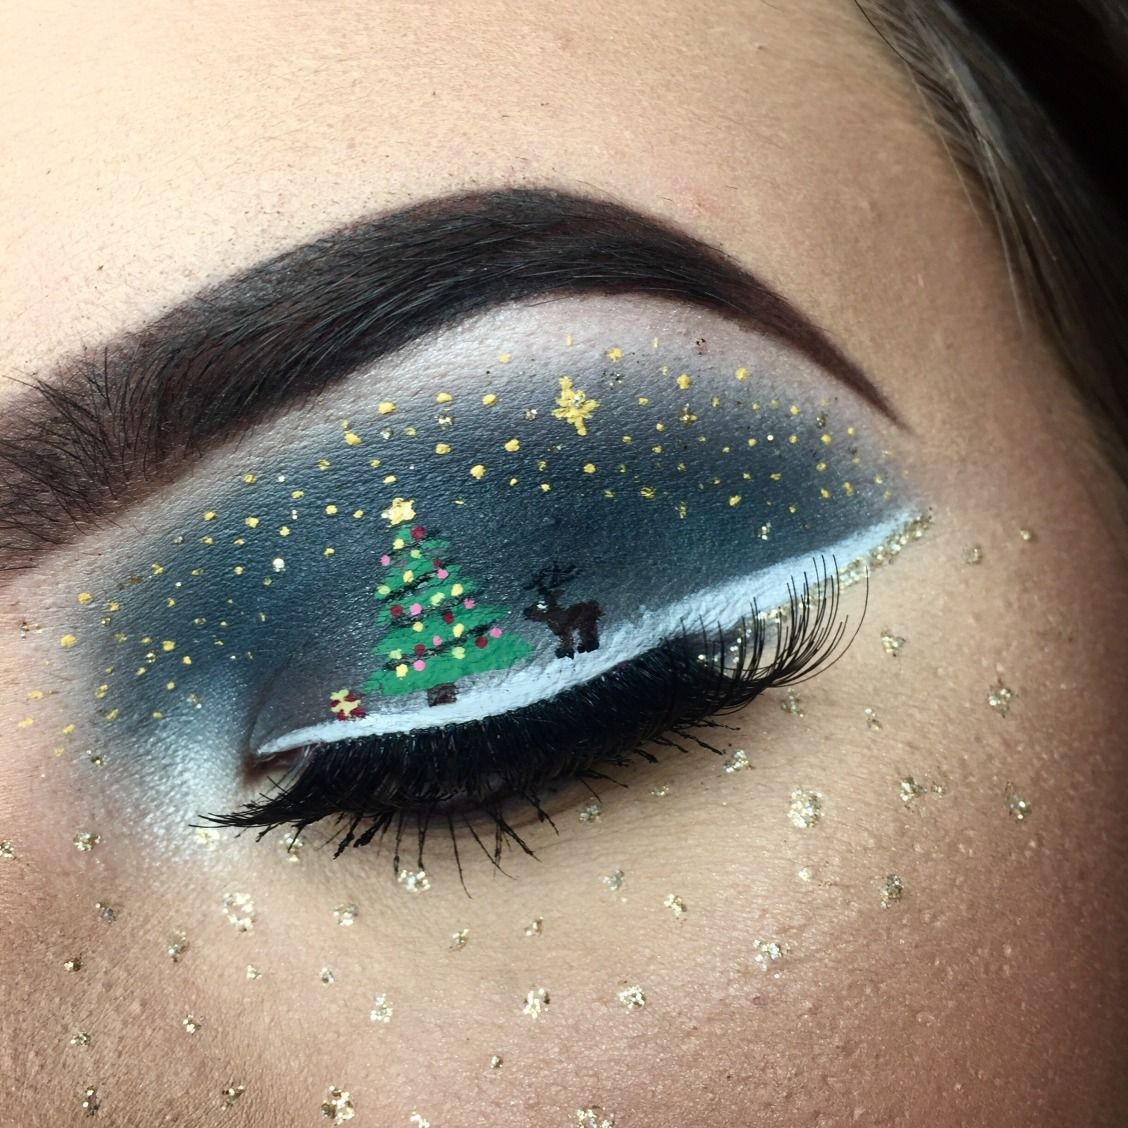 This Makeup Artist Drew The Most Mesmerizing Snow Globe Scene On